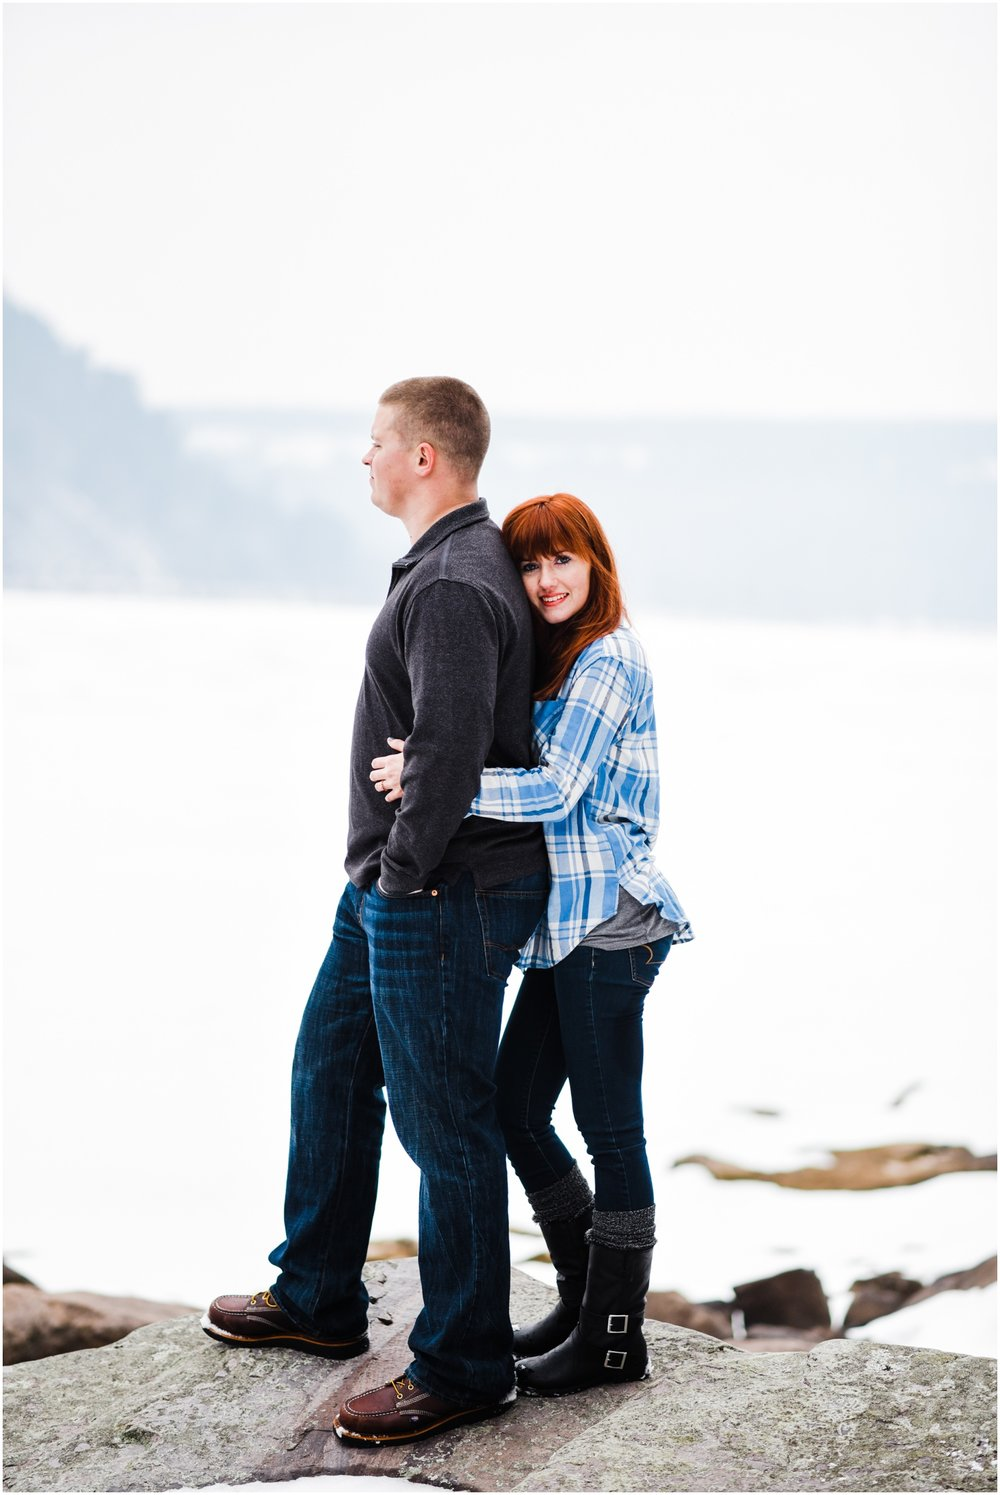 Devils-Lake-Baraboo-Wisconsin-Engagement-Photographer-Lindsey-And-Cody-Engaged-103.jpg